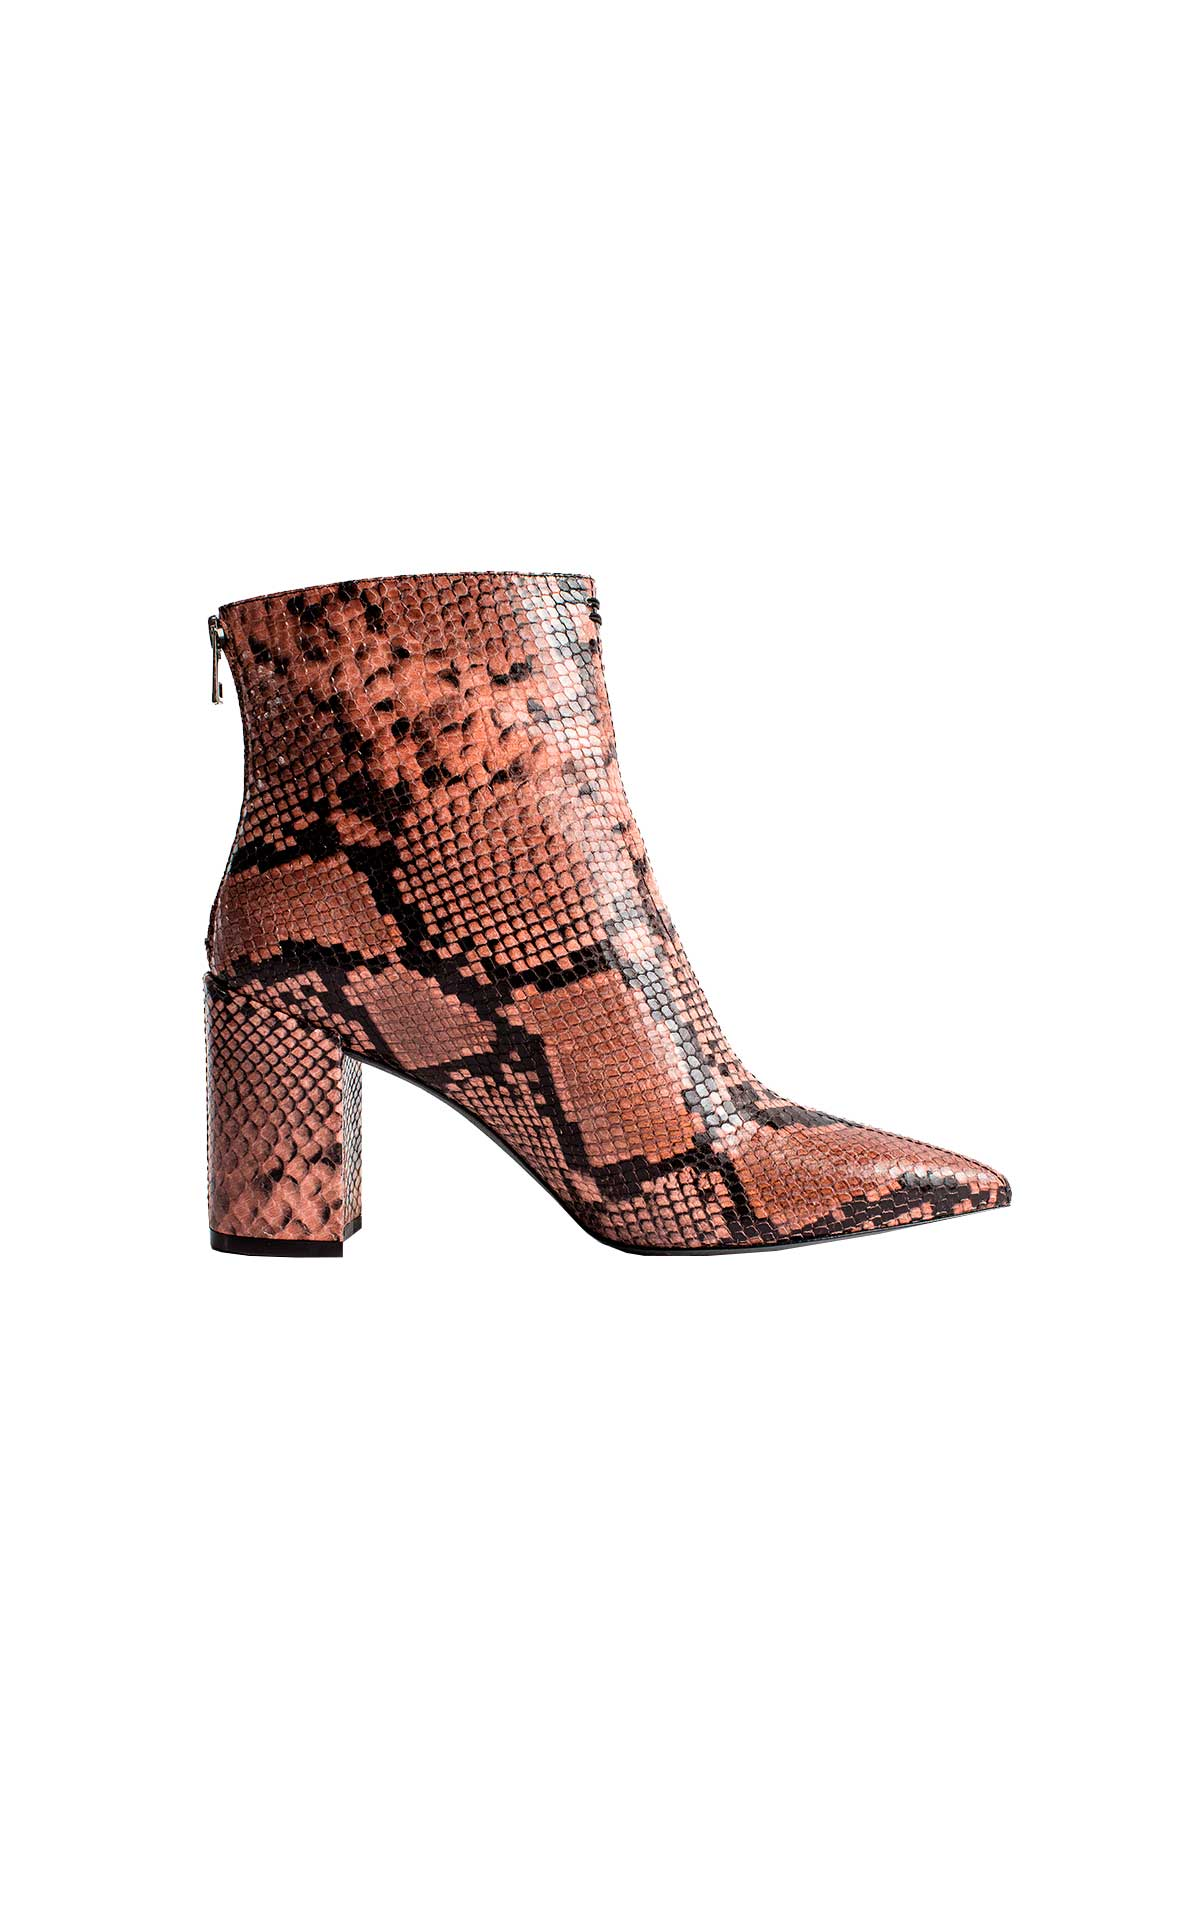 Snake skin ankle boot Zadig&Voltaire